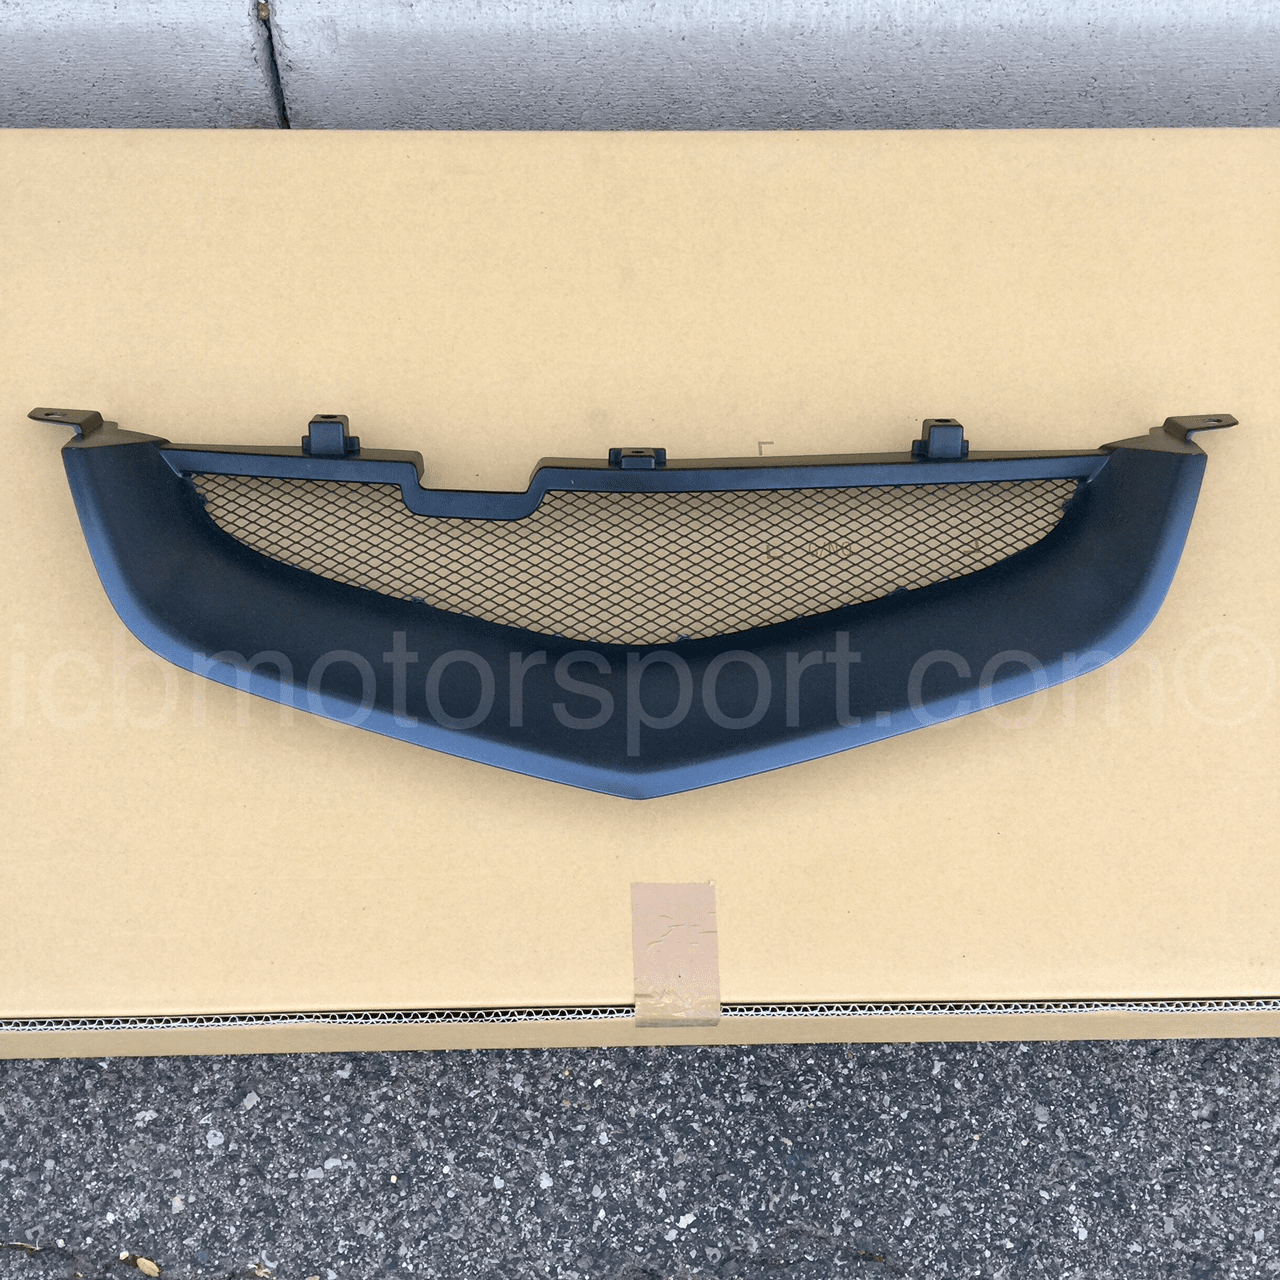 USED Mugen Front Sports Grille CL7 CL9 TSX 04-05 75100-XKB-K0S0ZZ Sold